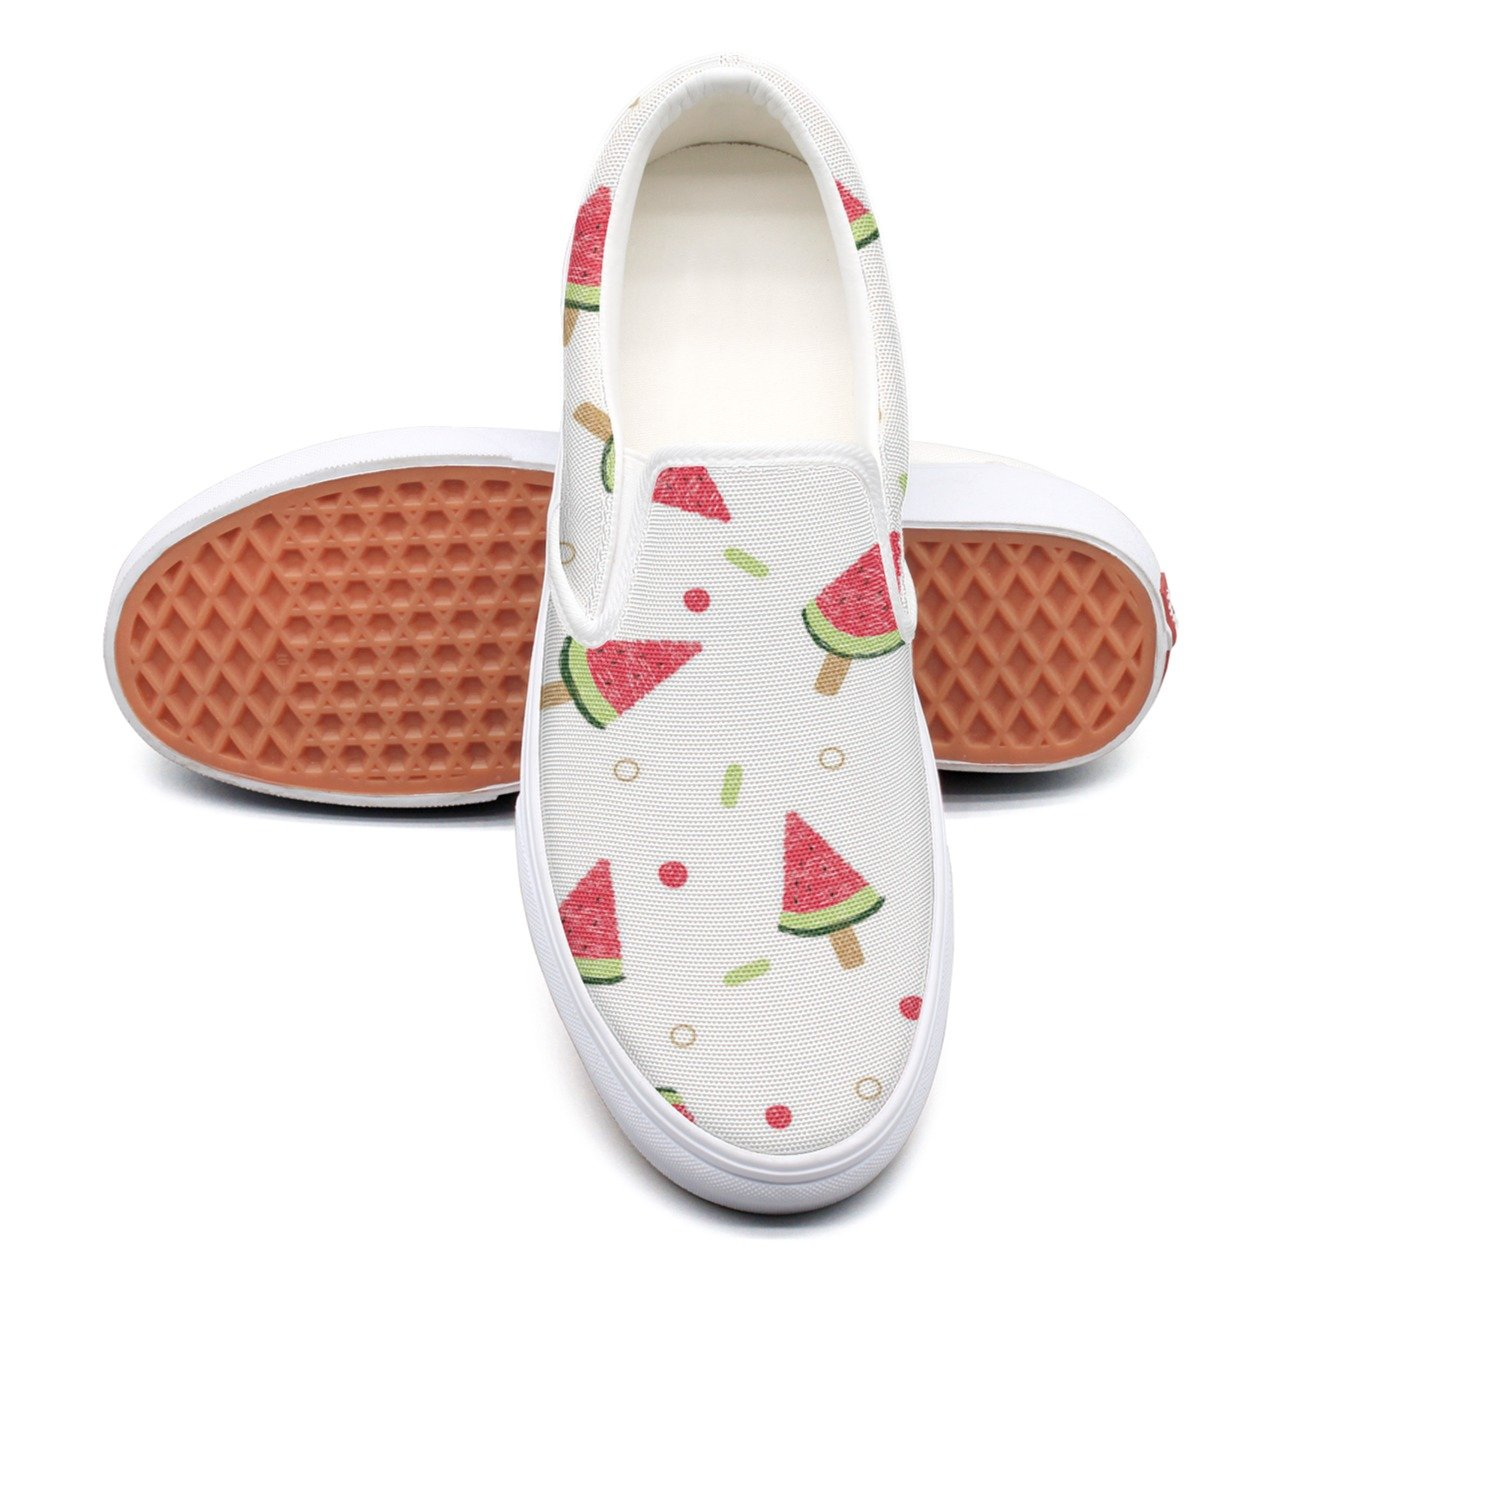 Fashion Young Women Watermelon Popsicle Clip Art Designer Slip On Skateboard Casual Sneakers Shoes